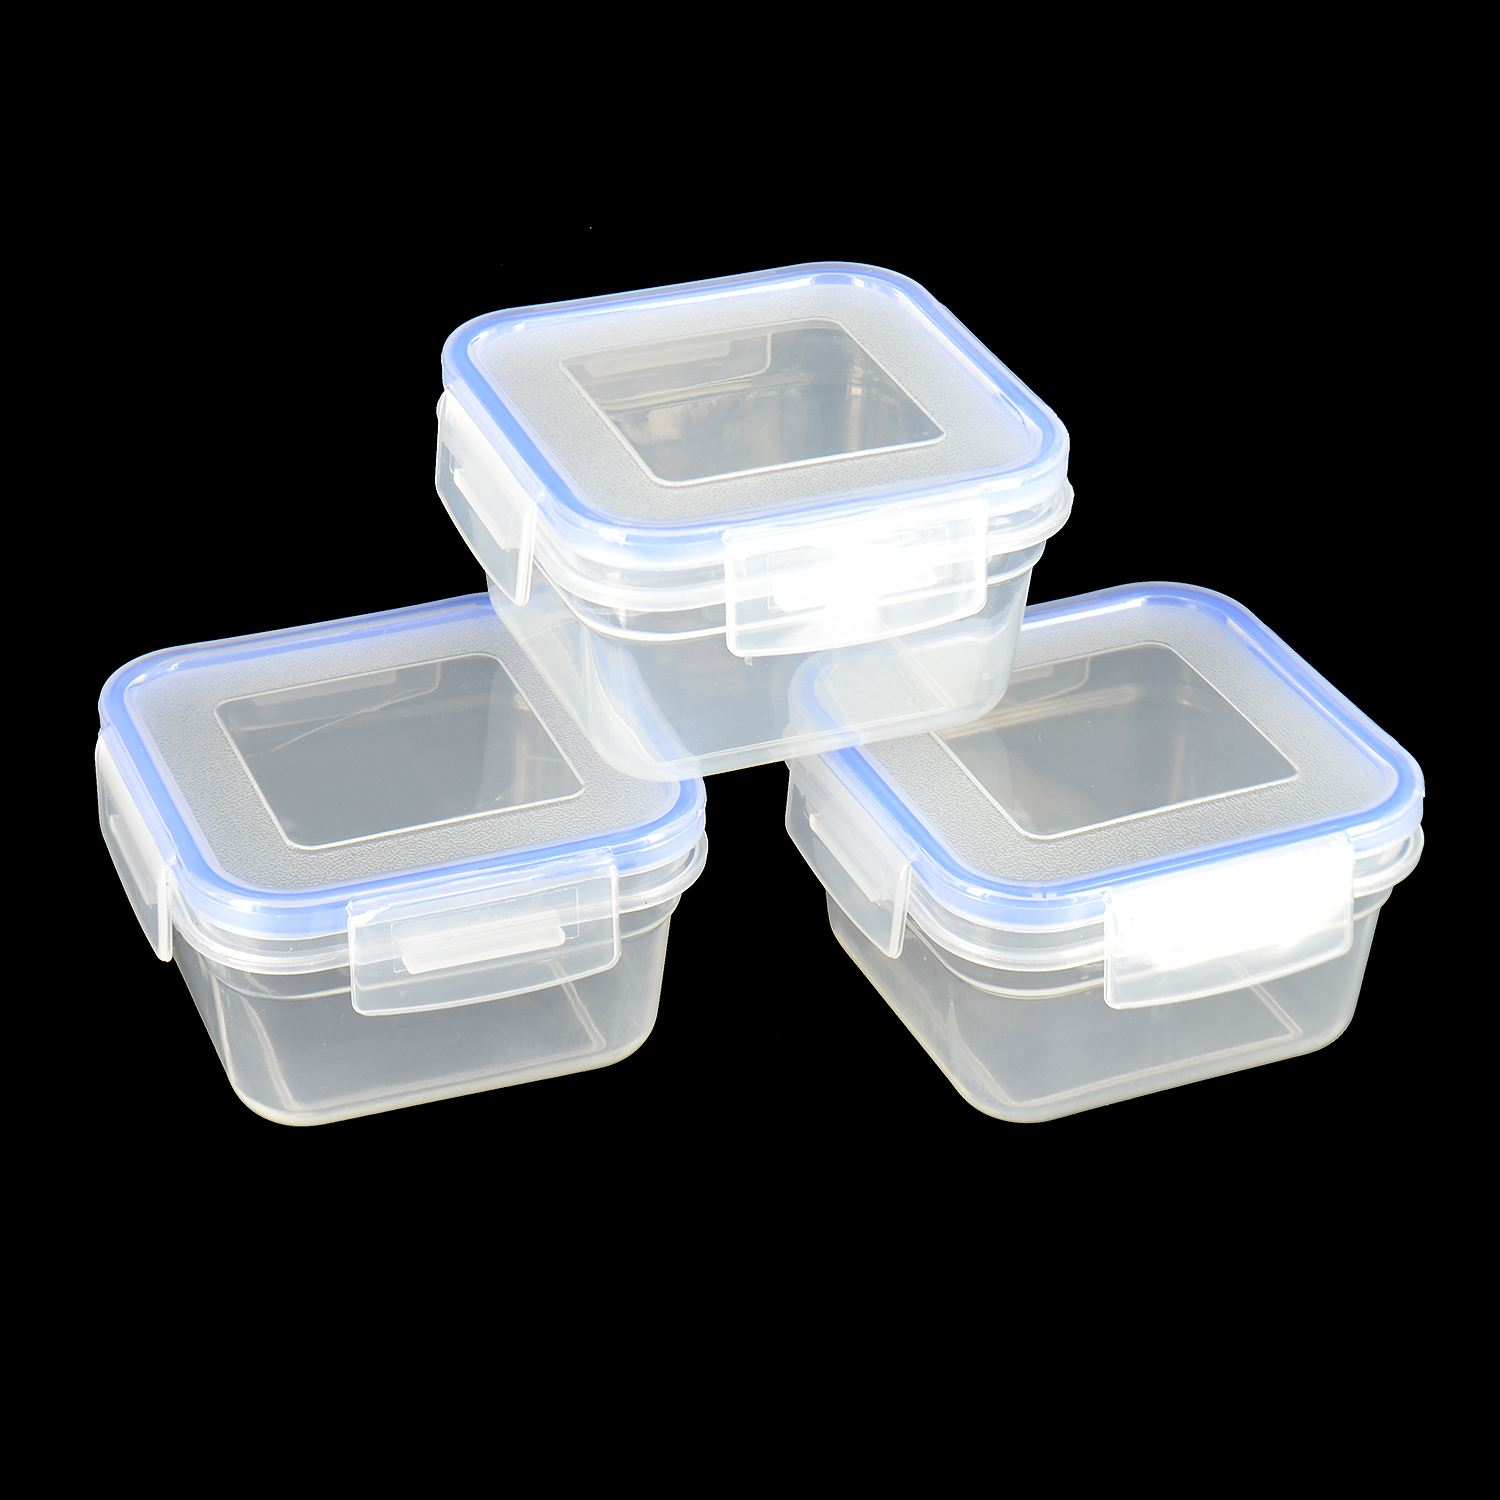 new 3x clip lock lids containers storage clear plastic boxes fresh food lunch ebay. Black Bedroom Furniture Sets. Home Design Ideas